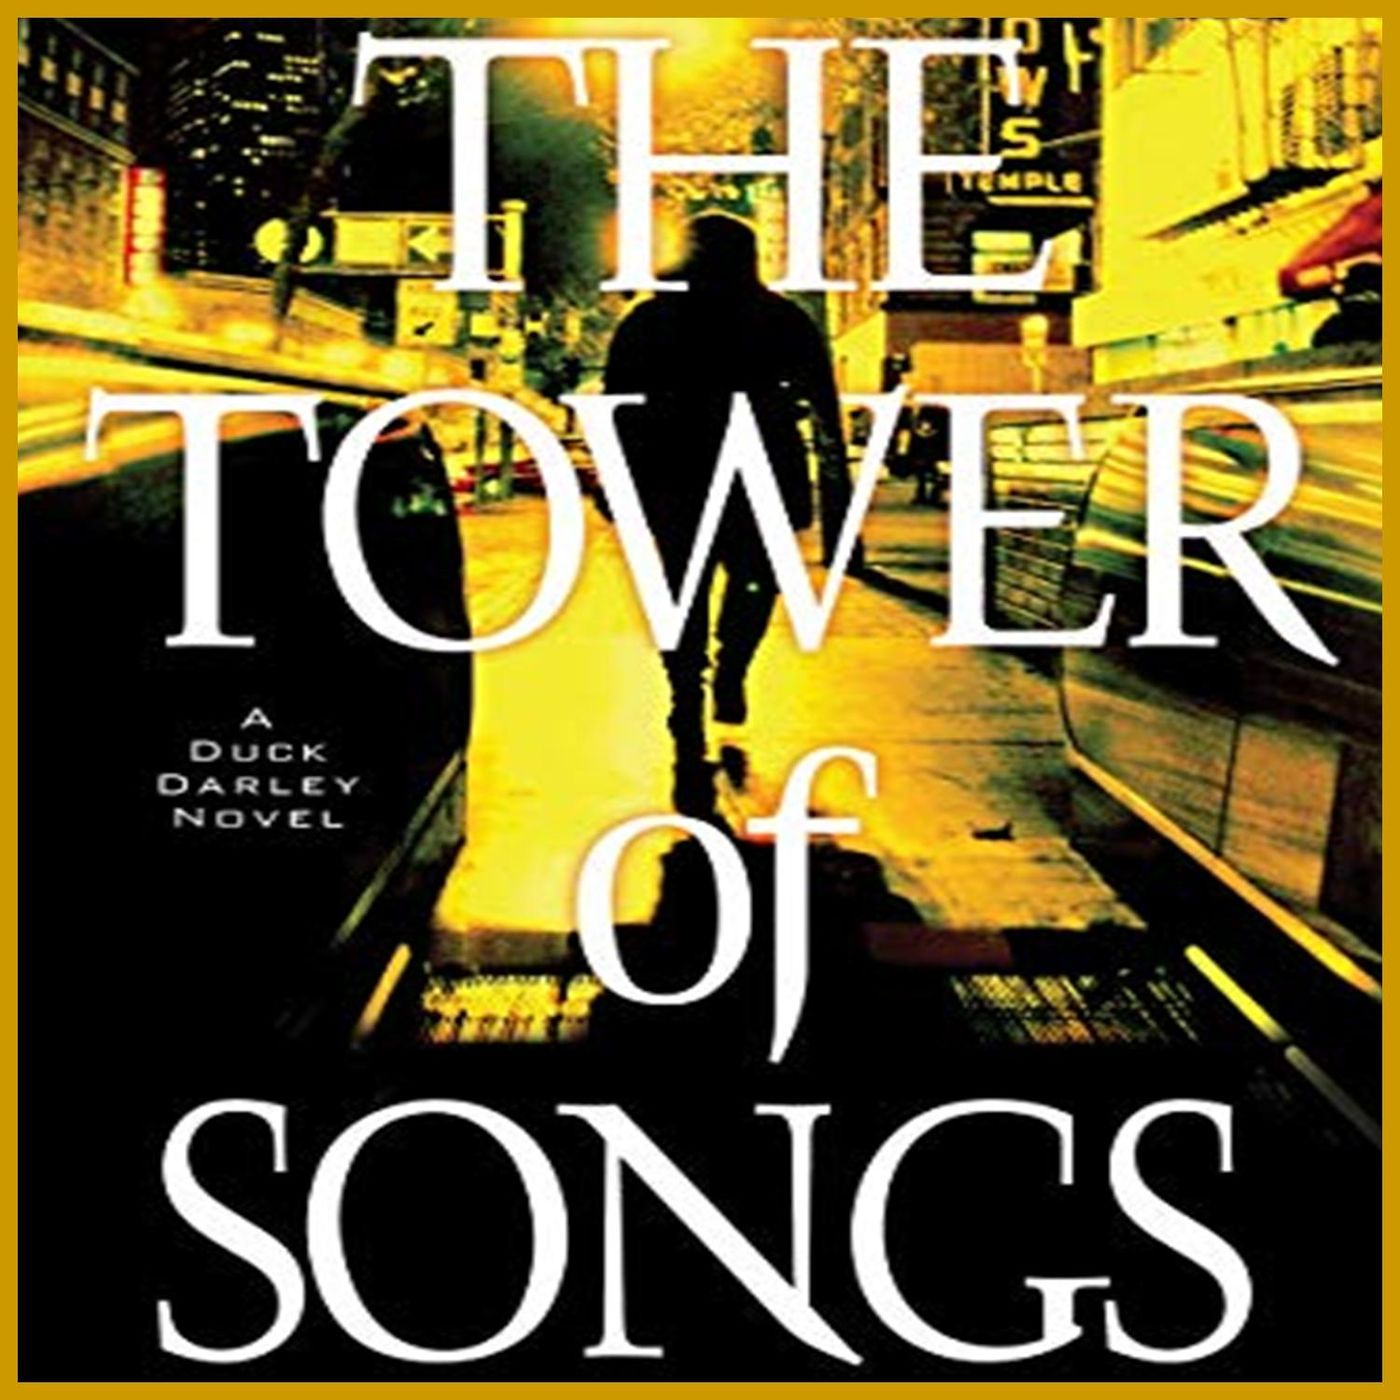 CASEY BARRETT - The Tower of Songs